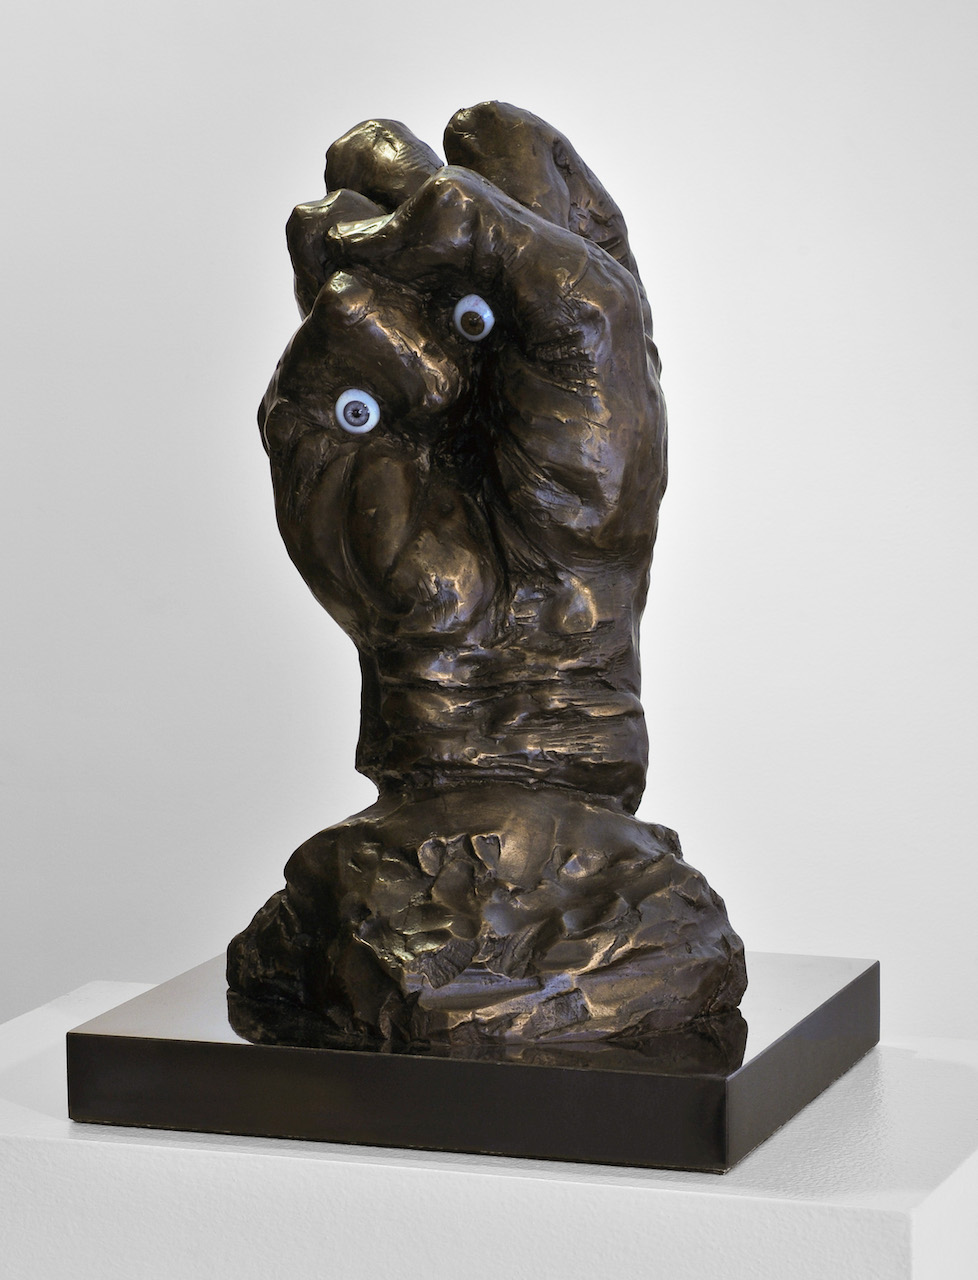 """Enrico Donati, """"Fist,"""" which is in the """"Magic Circle"""" of the 1948 photograph and the reinterpretation at the 'Language of the Birds' (courtesy Pam Grossman)"""